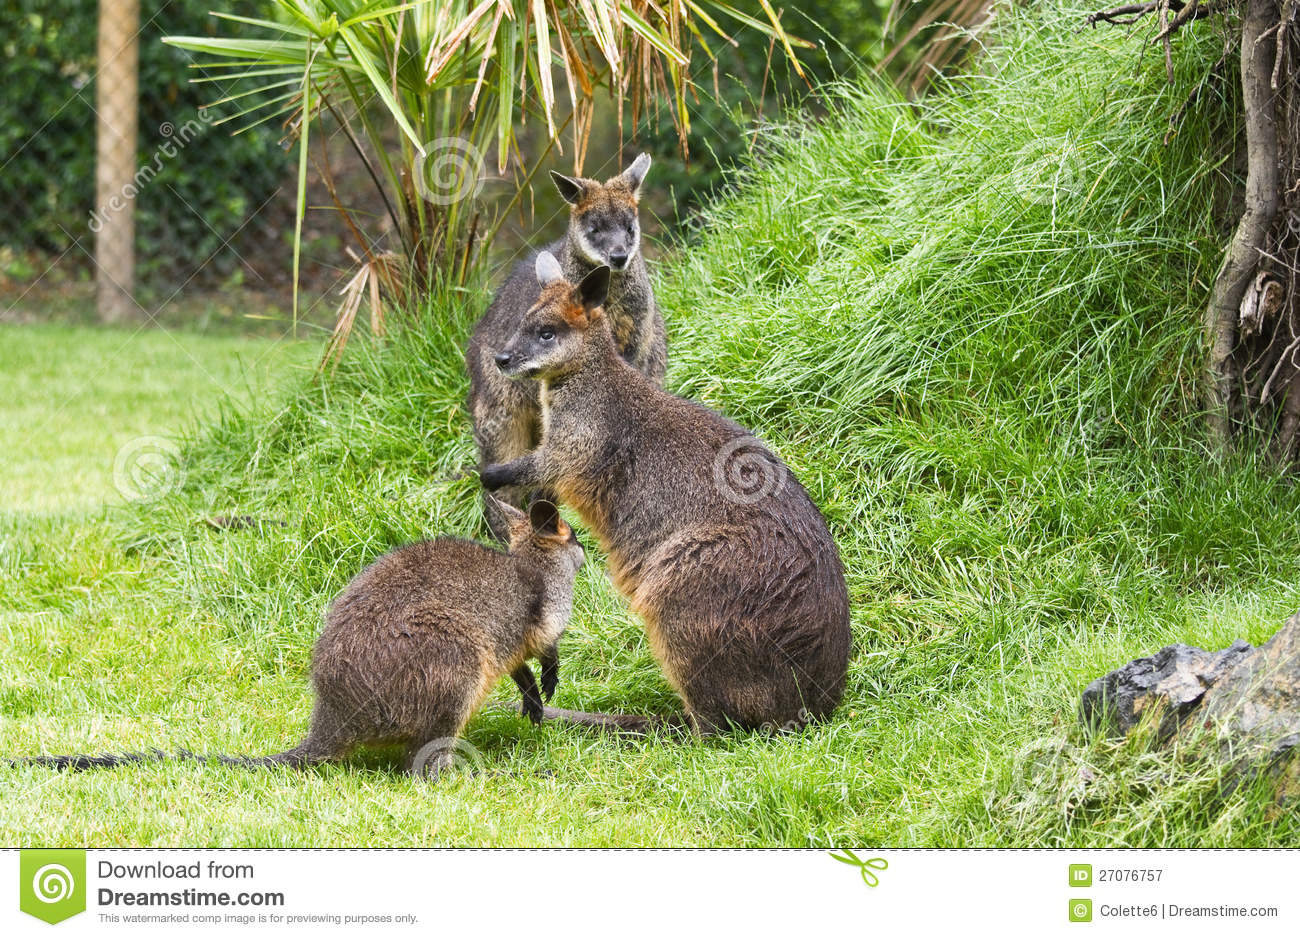 Swamp Wallaby clipart #11, Download drawings